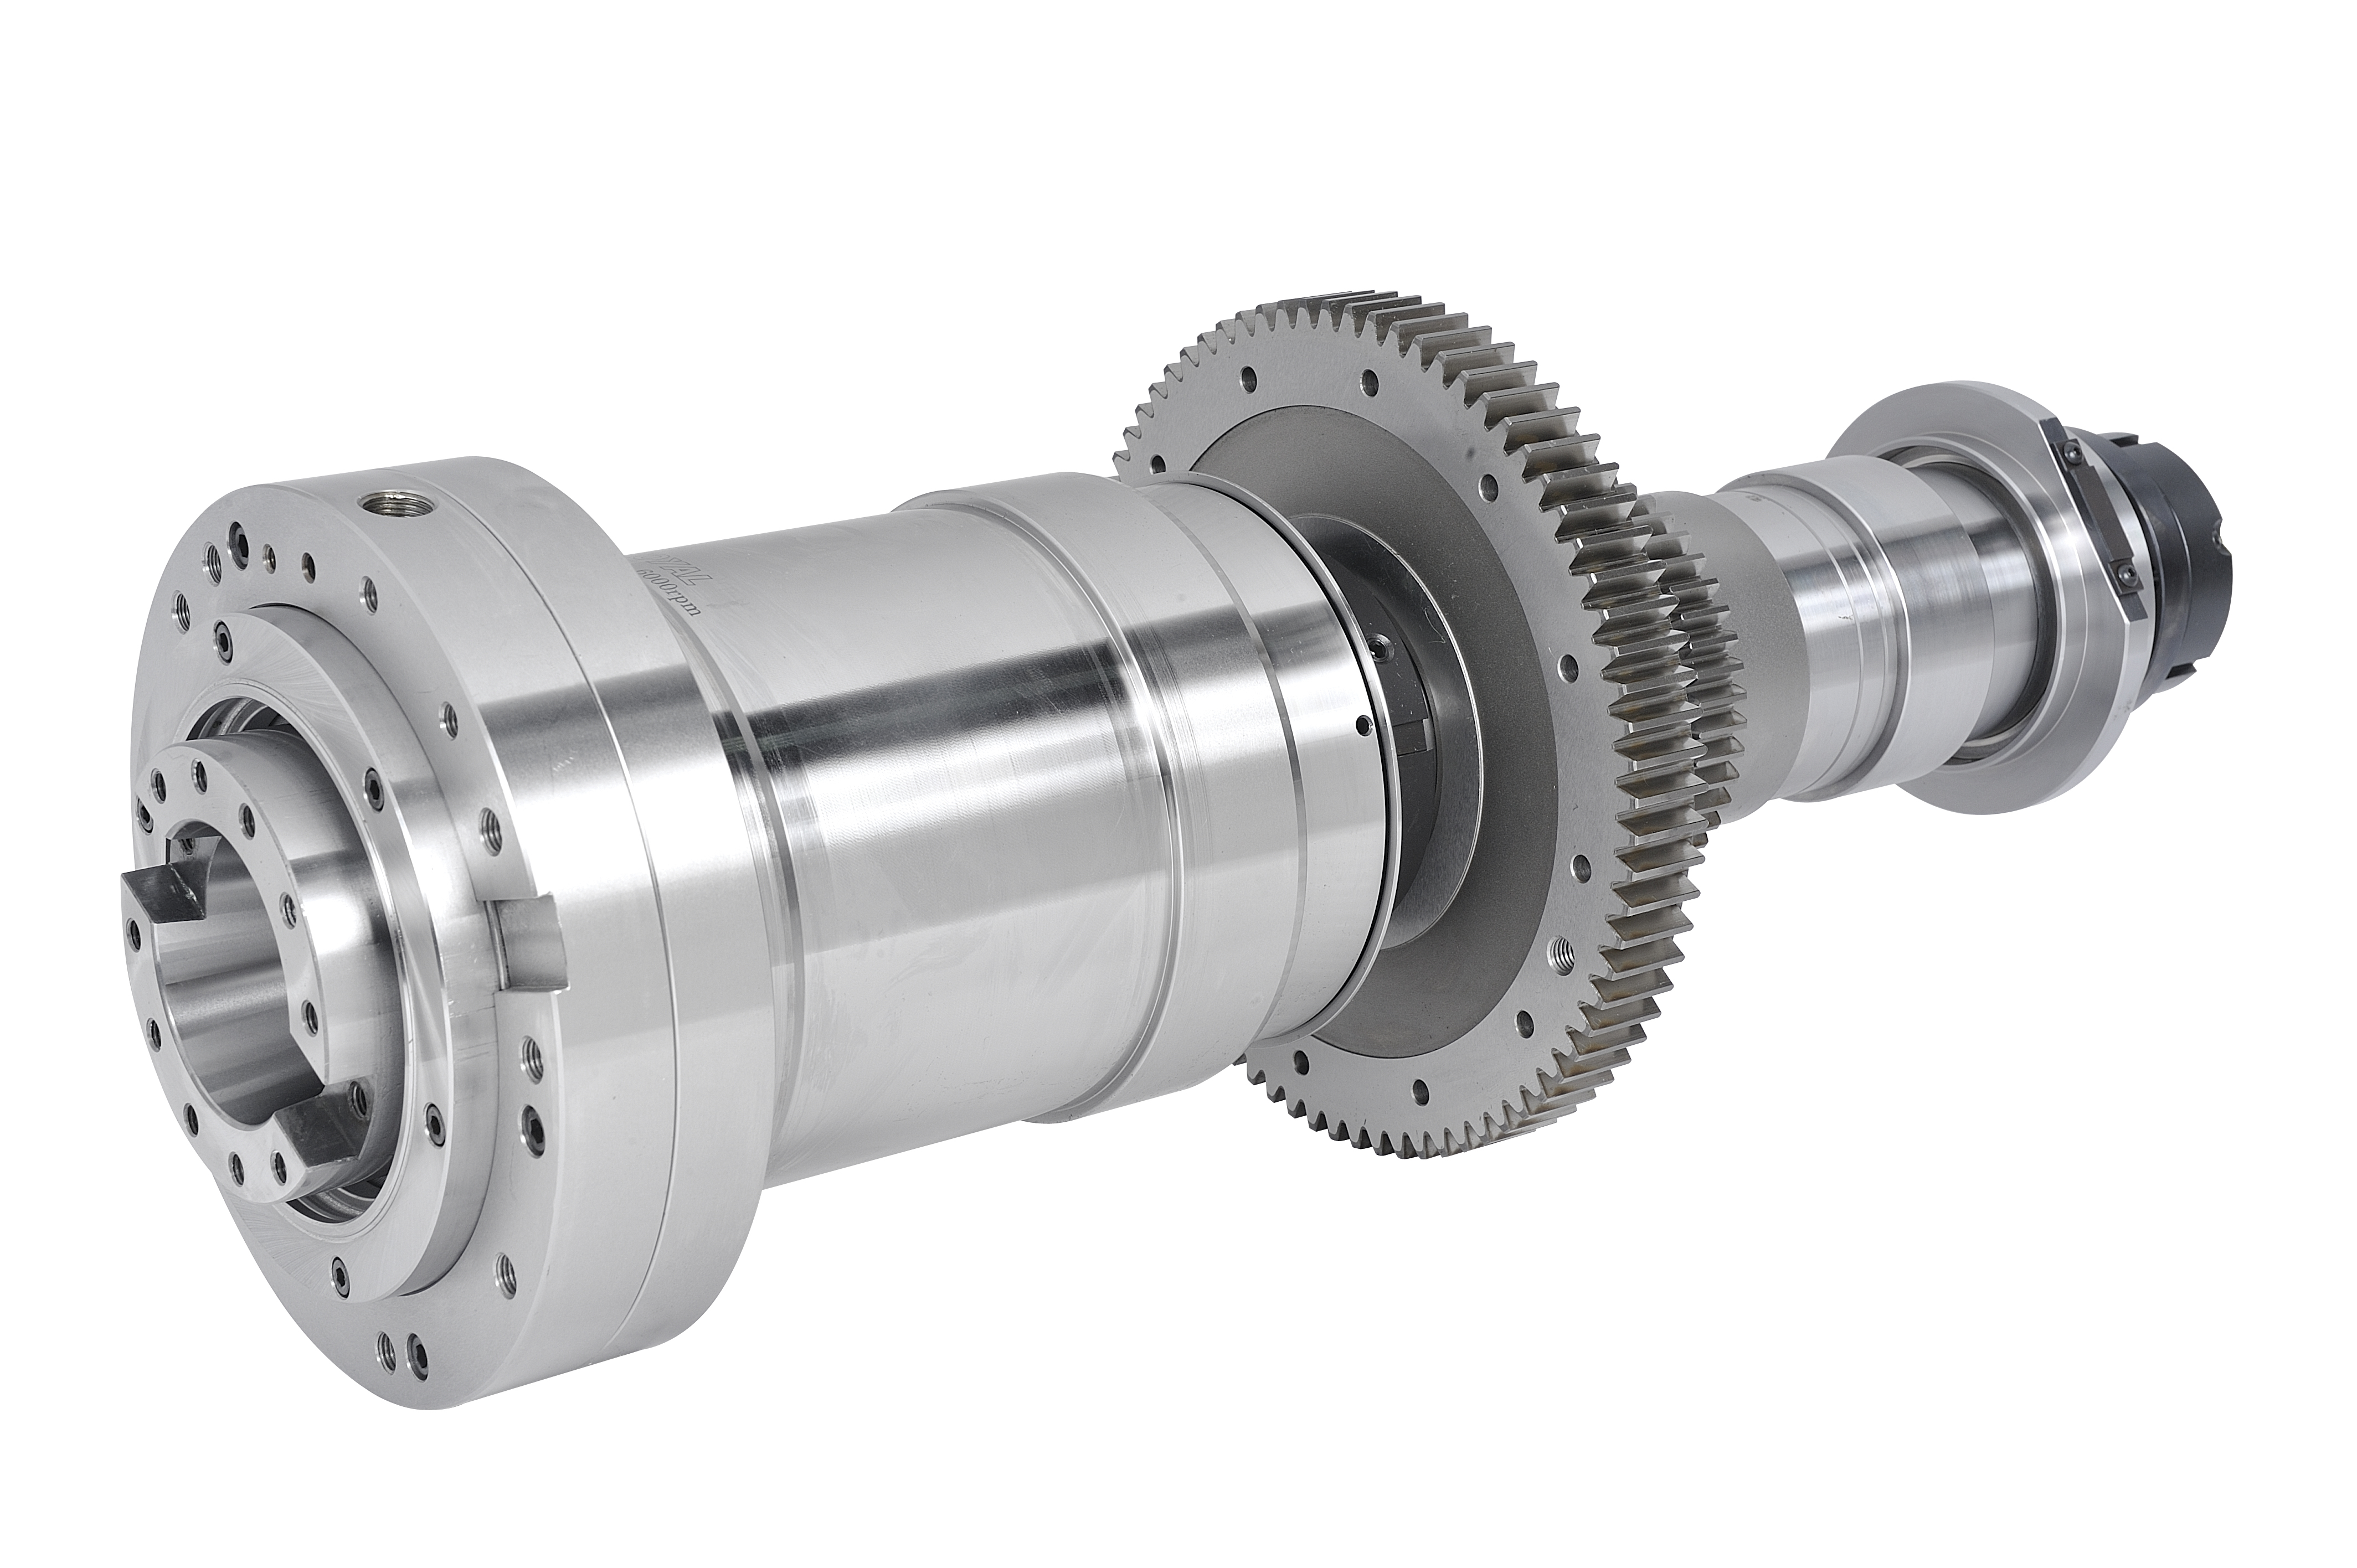 Milling Gear-Drive Spindle